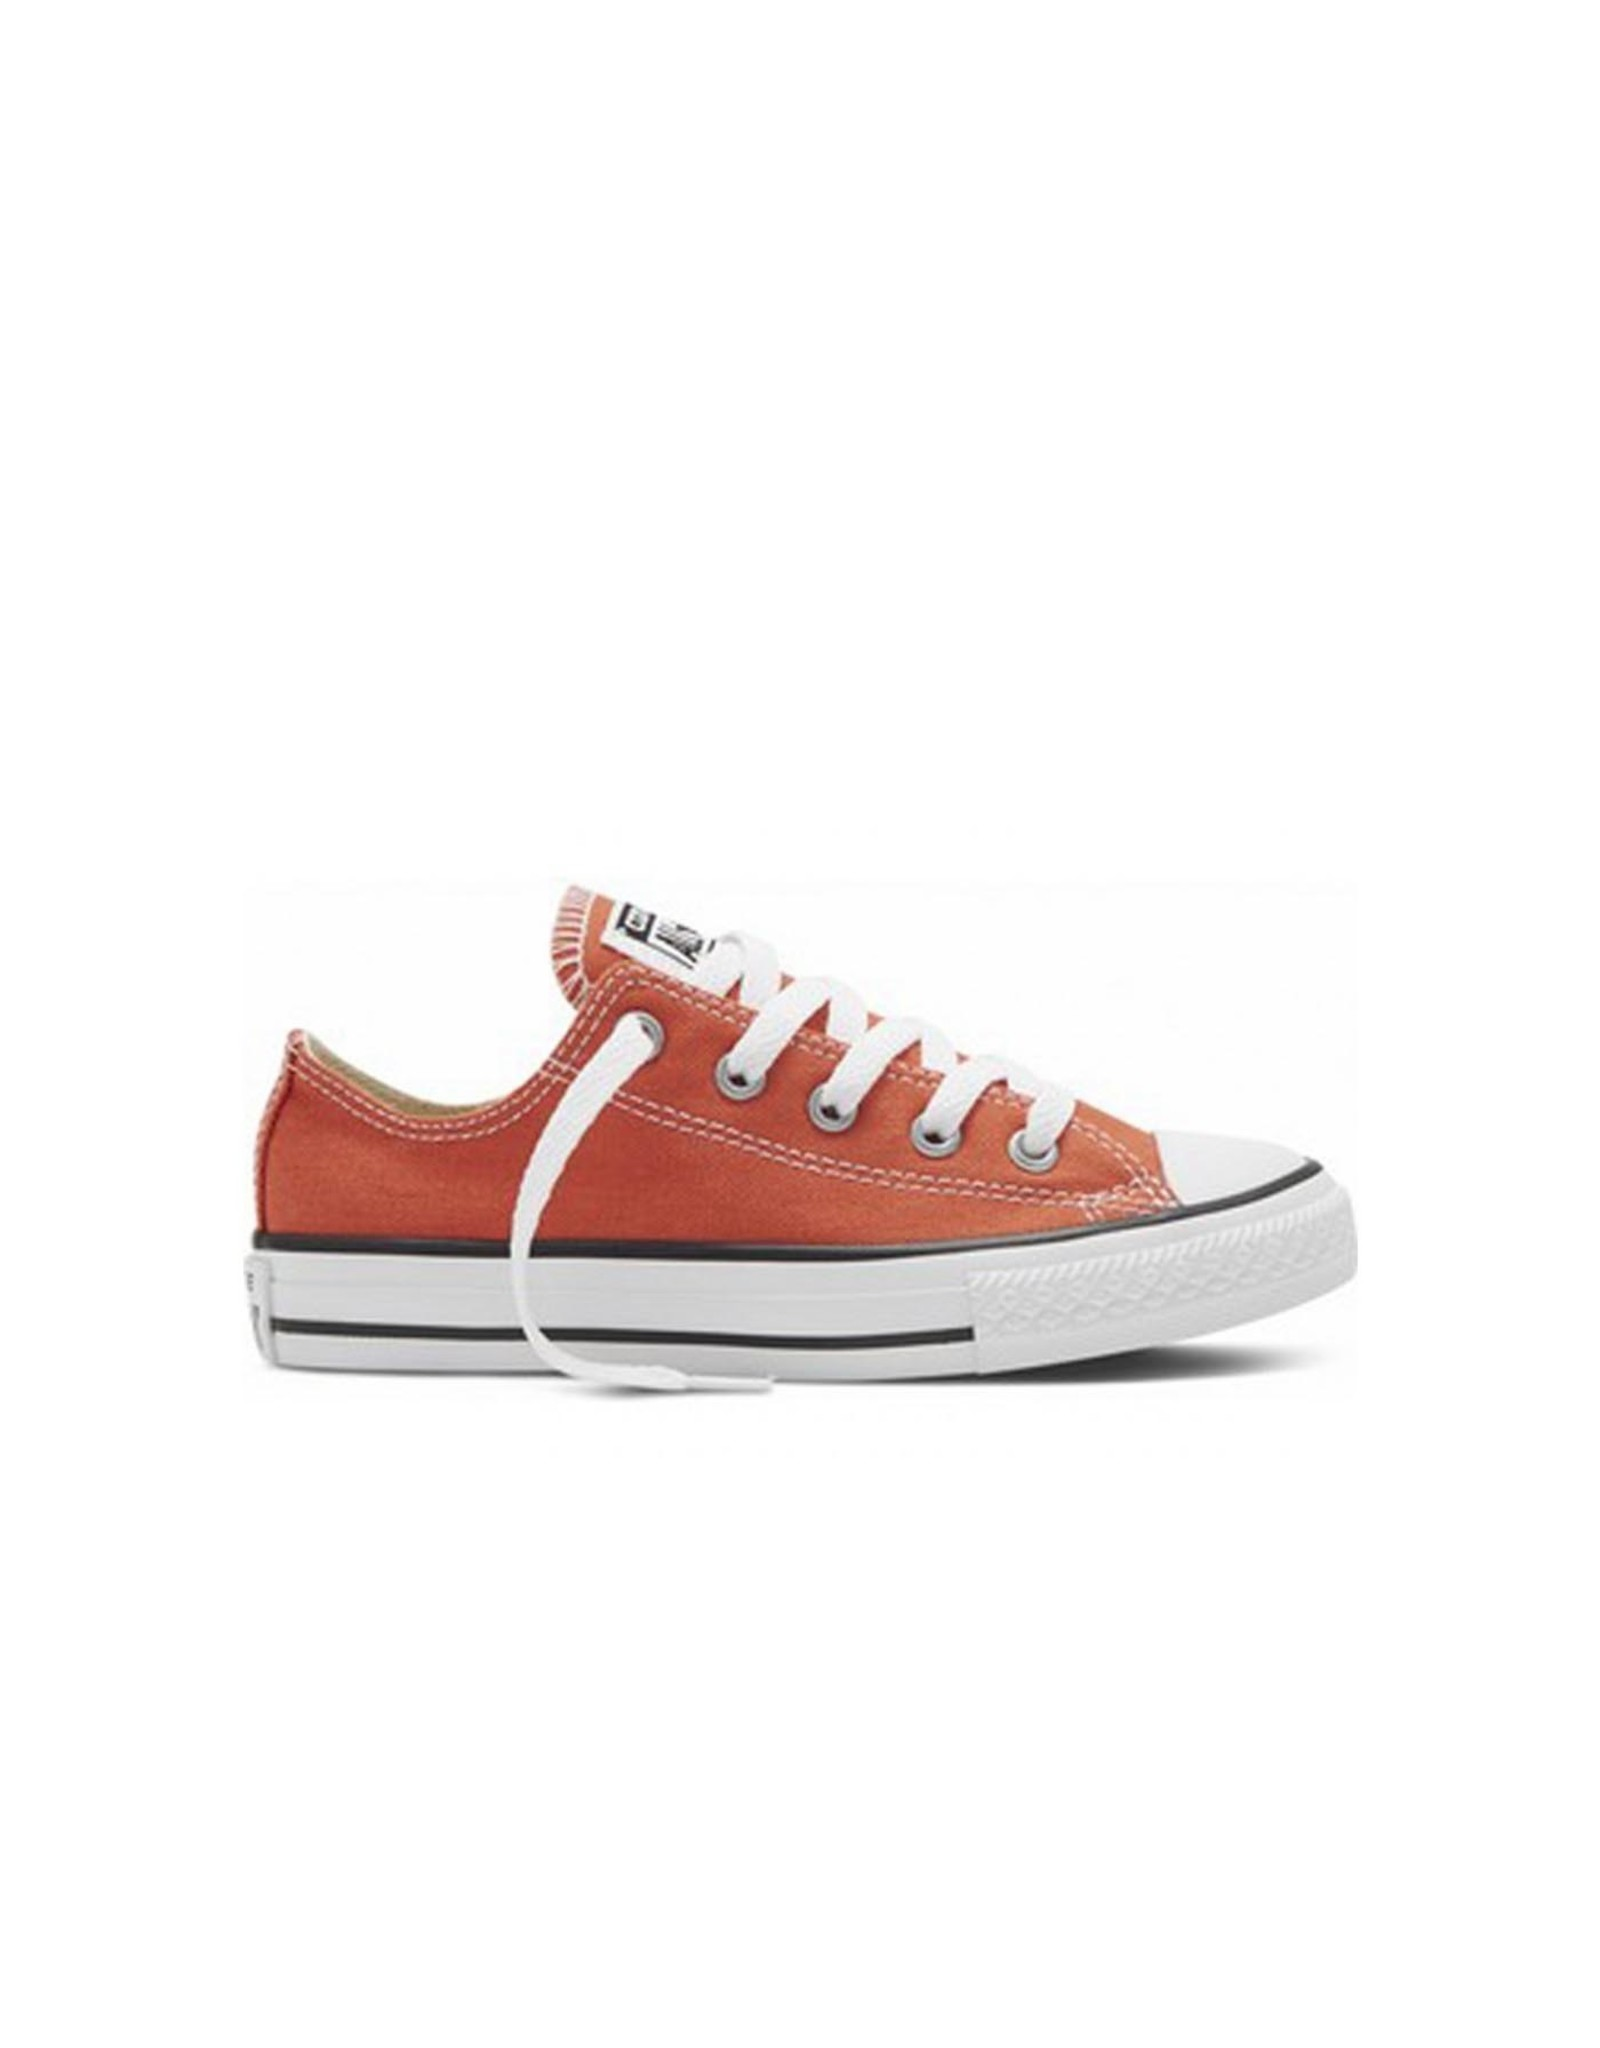 CONVERSE CHUCK TAYLOR ALL STAR OX MY VAN IS ON FIRE CVVANJ-351183C